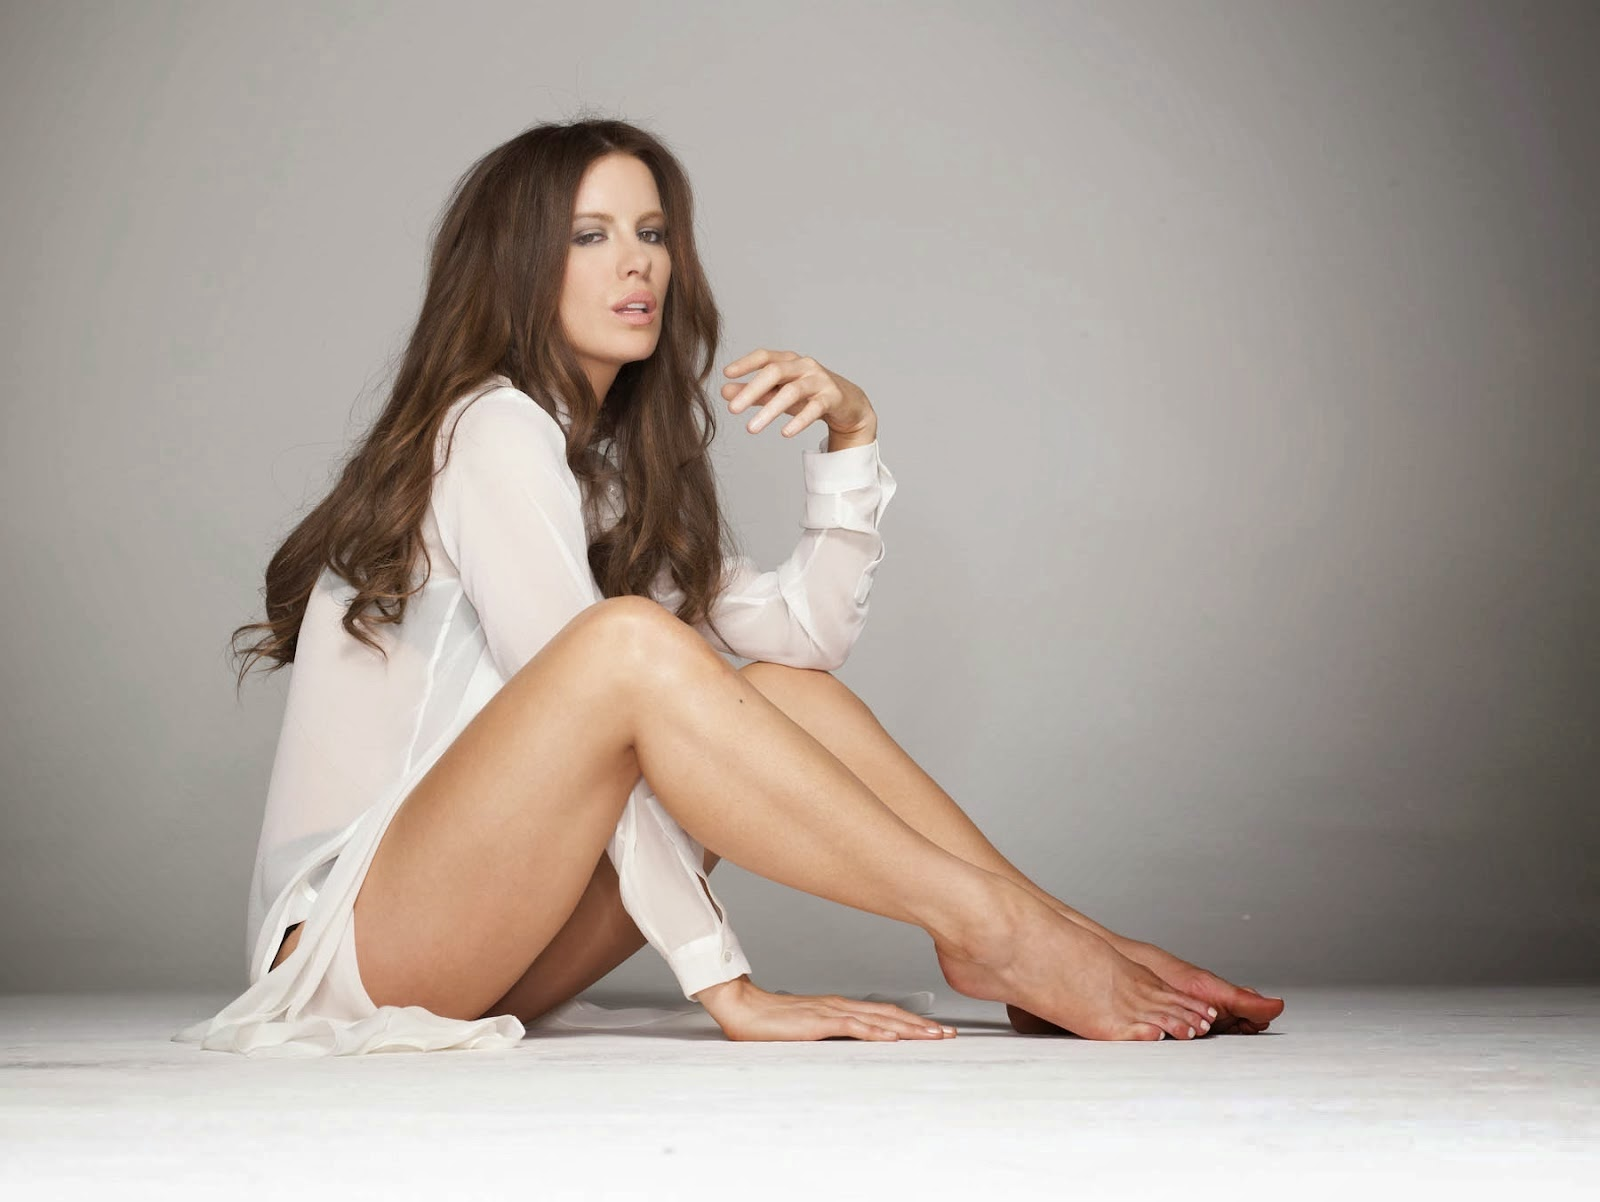 Think, Sexy kate beckinsale hot theme, will